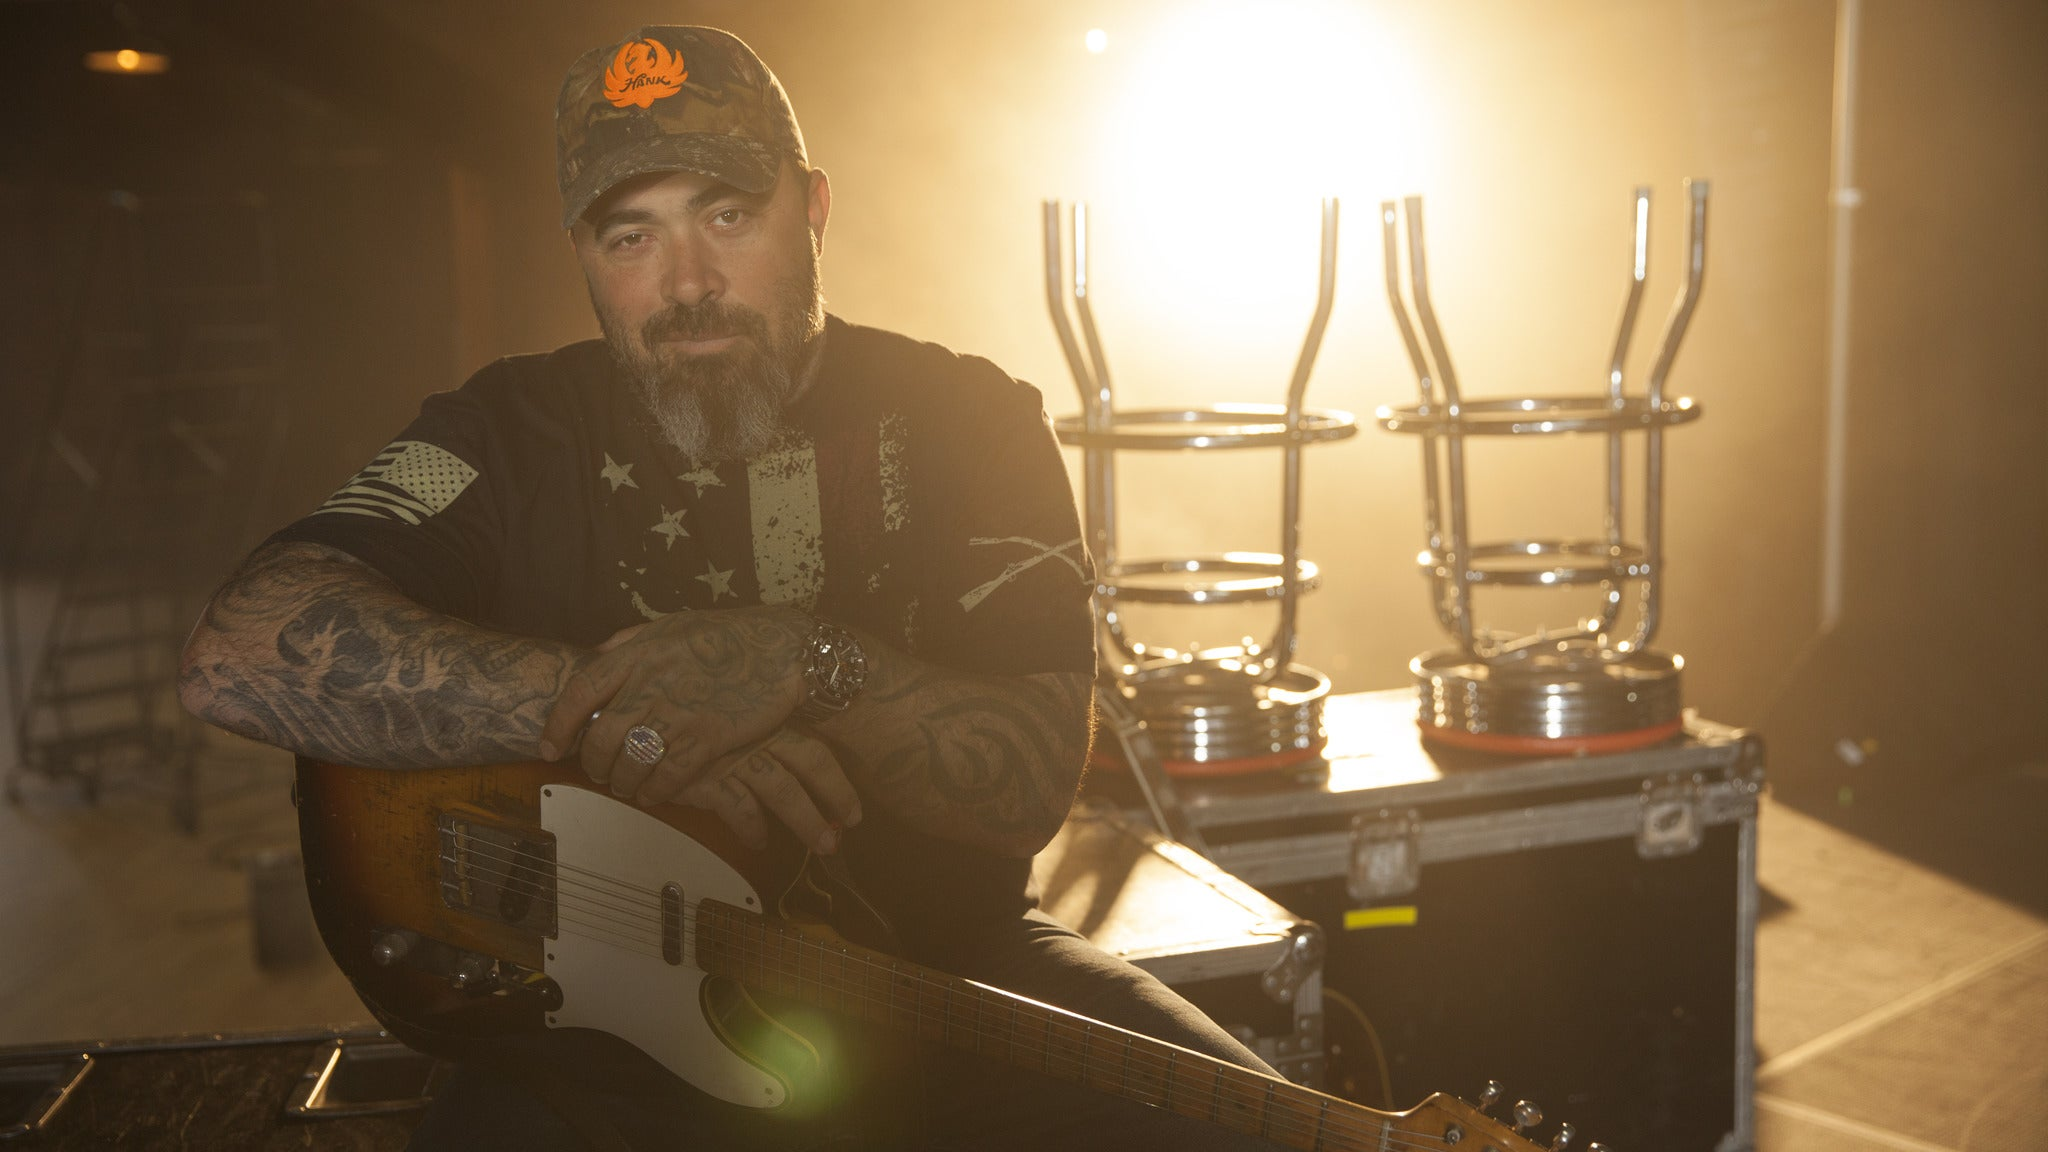 Aaron Lewis, The Sinner Tour at Louisville Palace